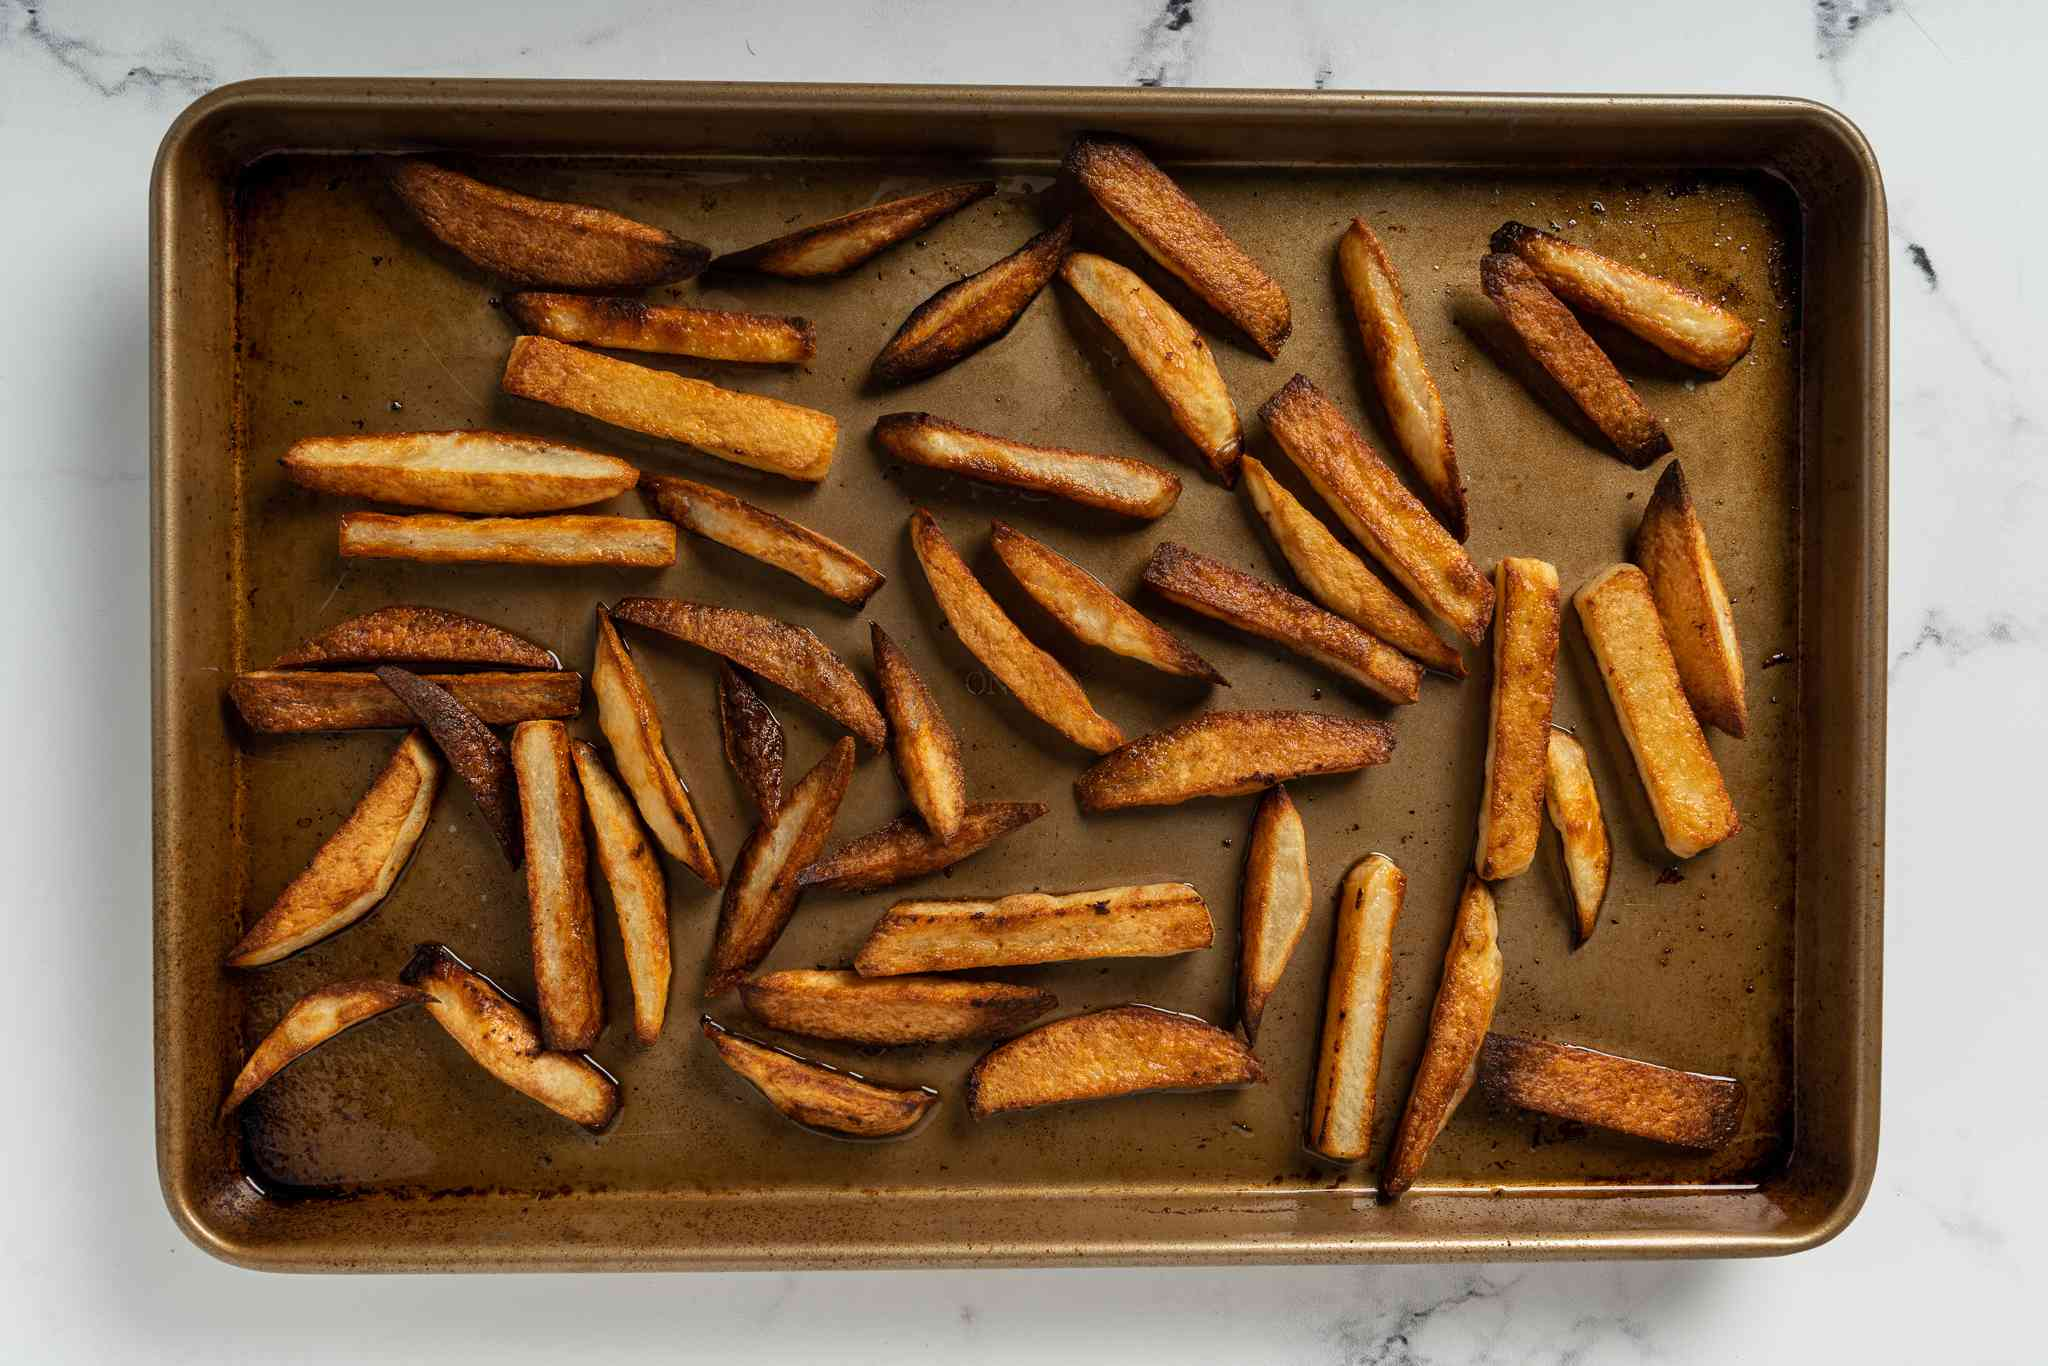 Baked French Fries on a baking sheet